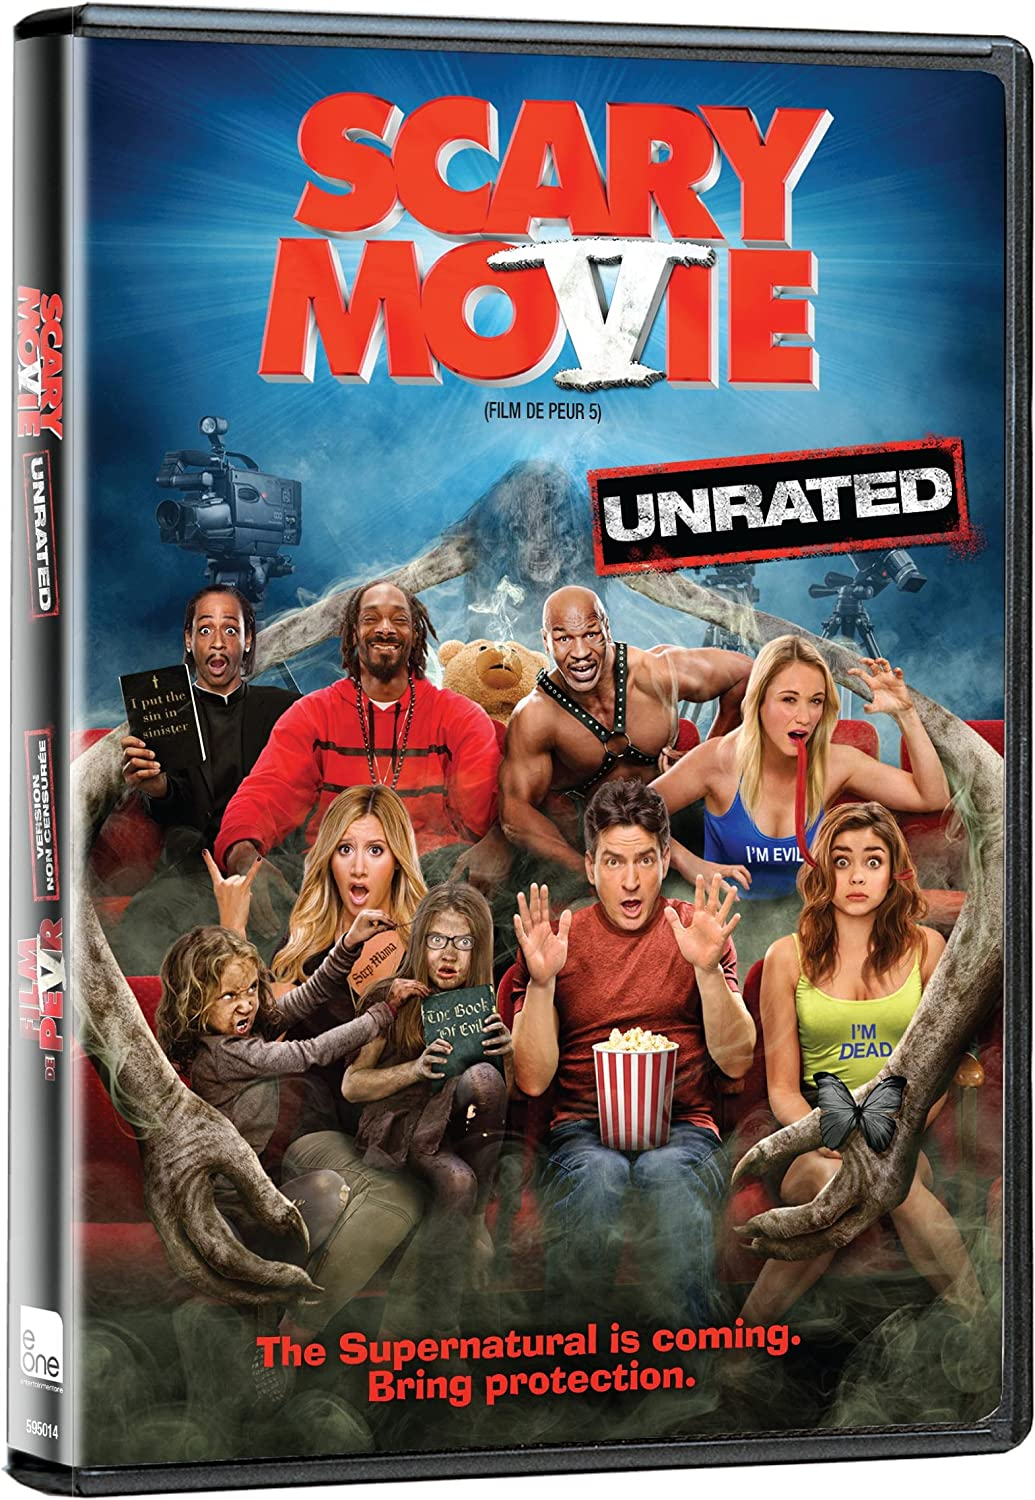 Scary Movie 5 Film De Peur 5 Bilingual Amazon Ca Lindsay Lohan Charlie Sheen Ashley Tisdale Terry Crews Kate Walsh Molly Shannon Heather Locklear Simon Rex Mike Tyson Jerry O Connell Malcolm D